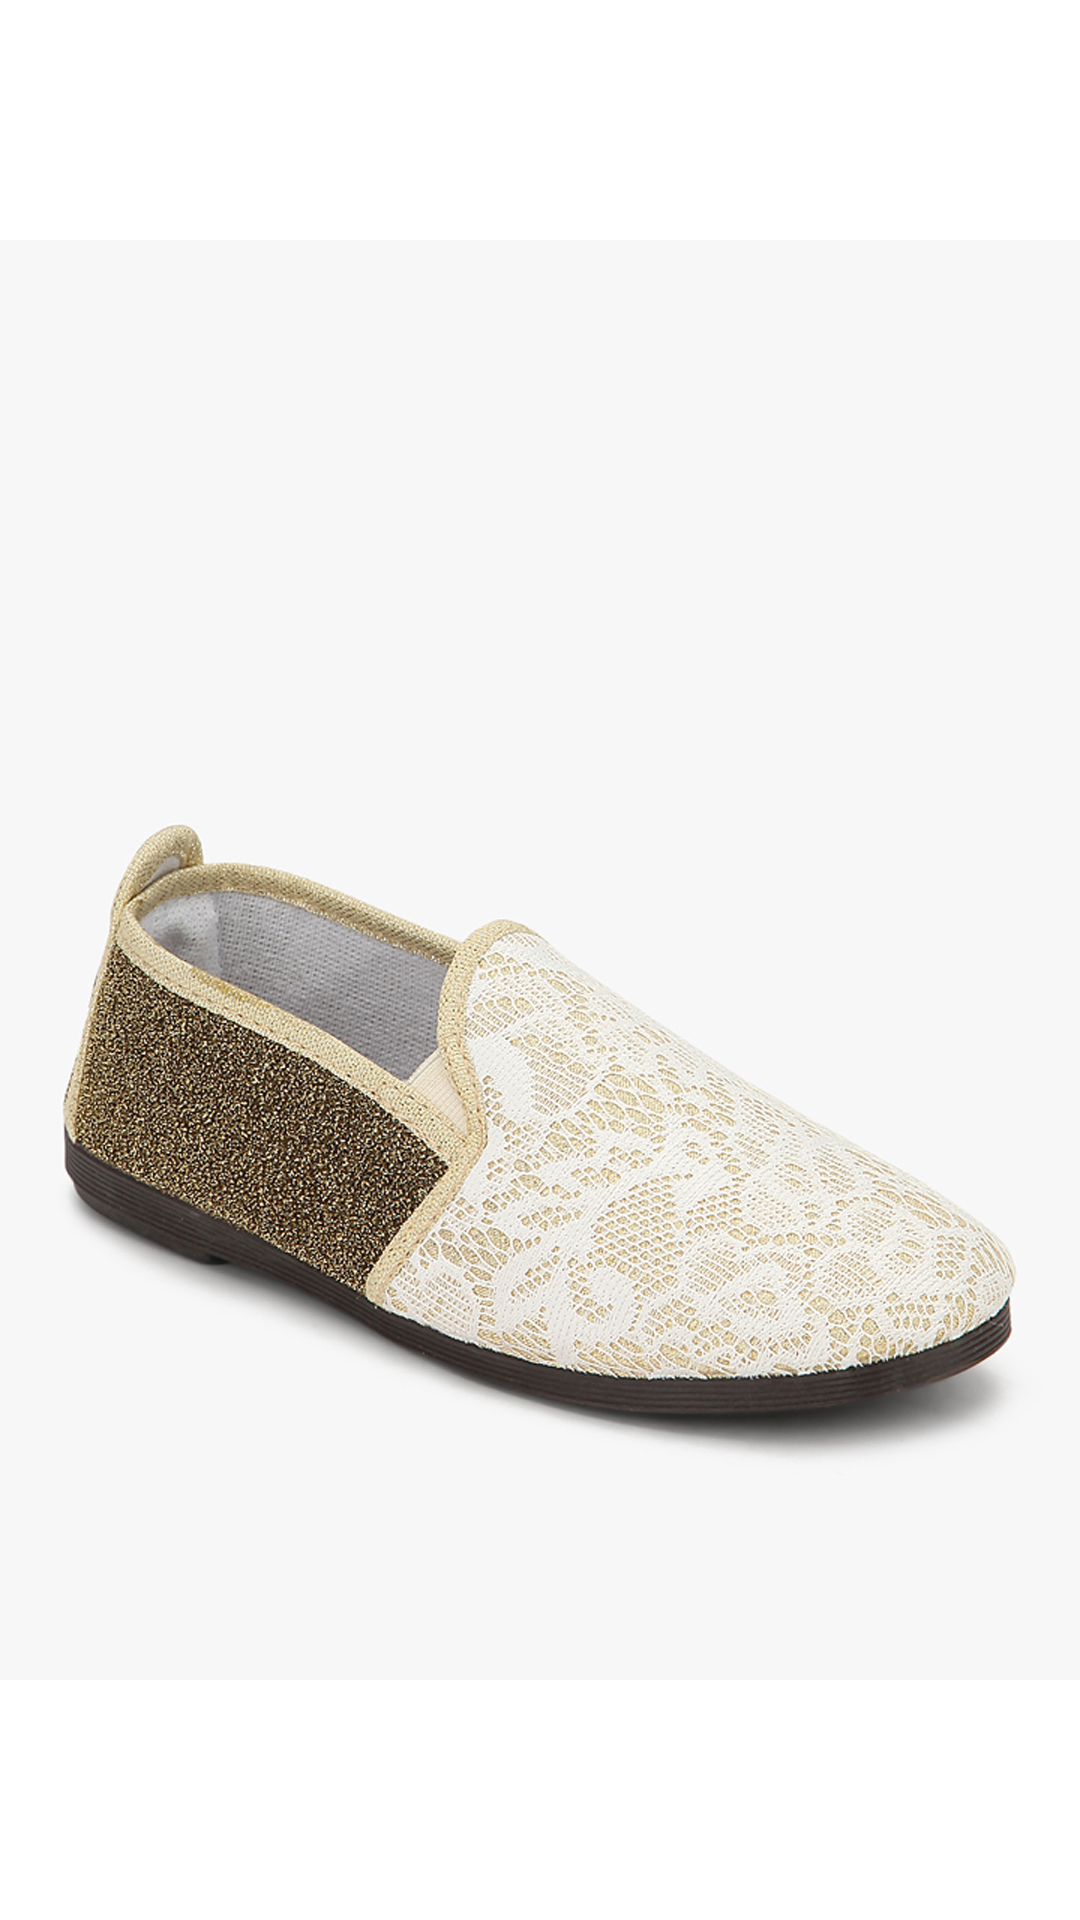 Scentra Gold And White Casual Shoes